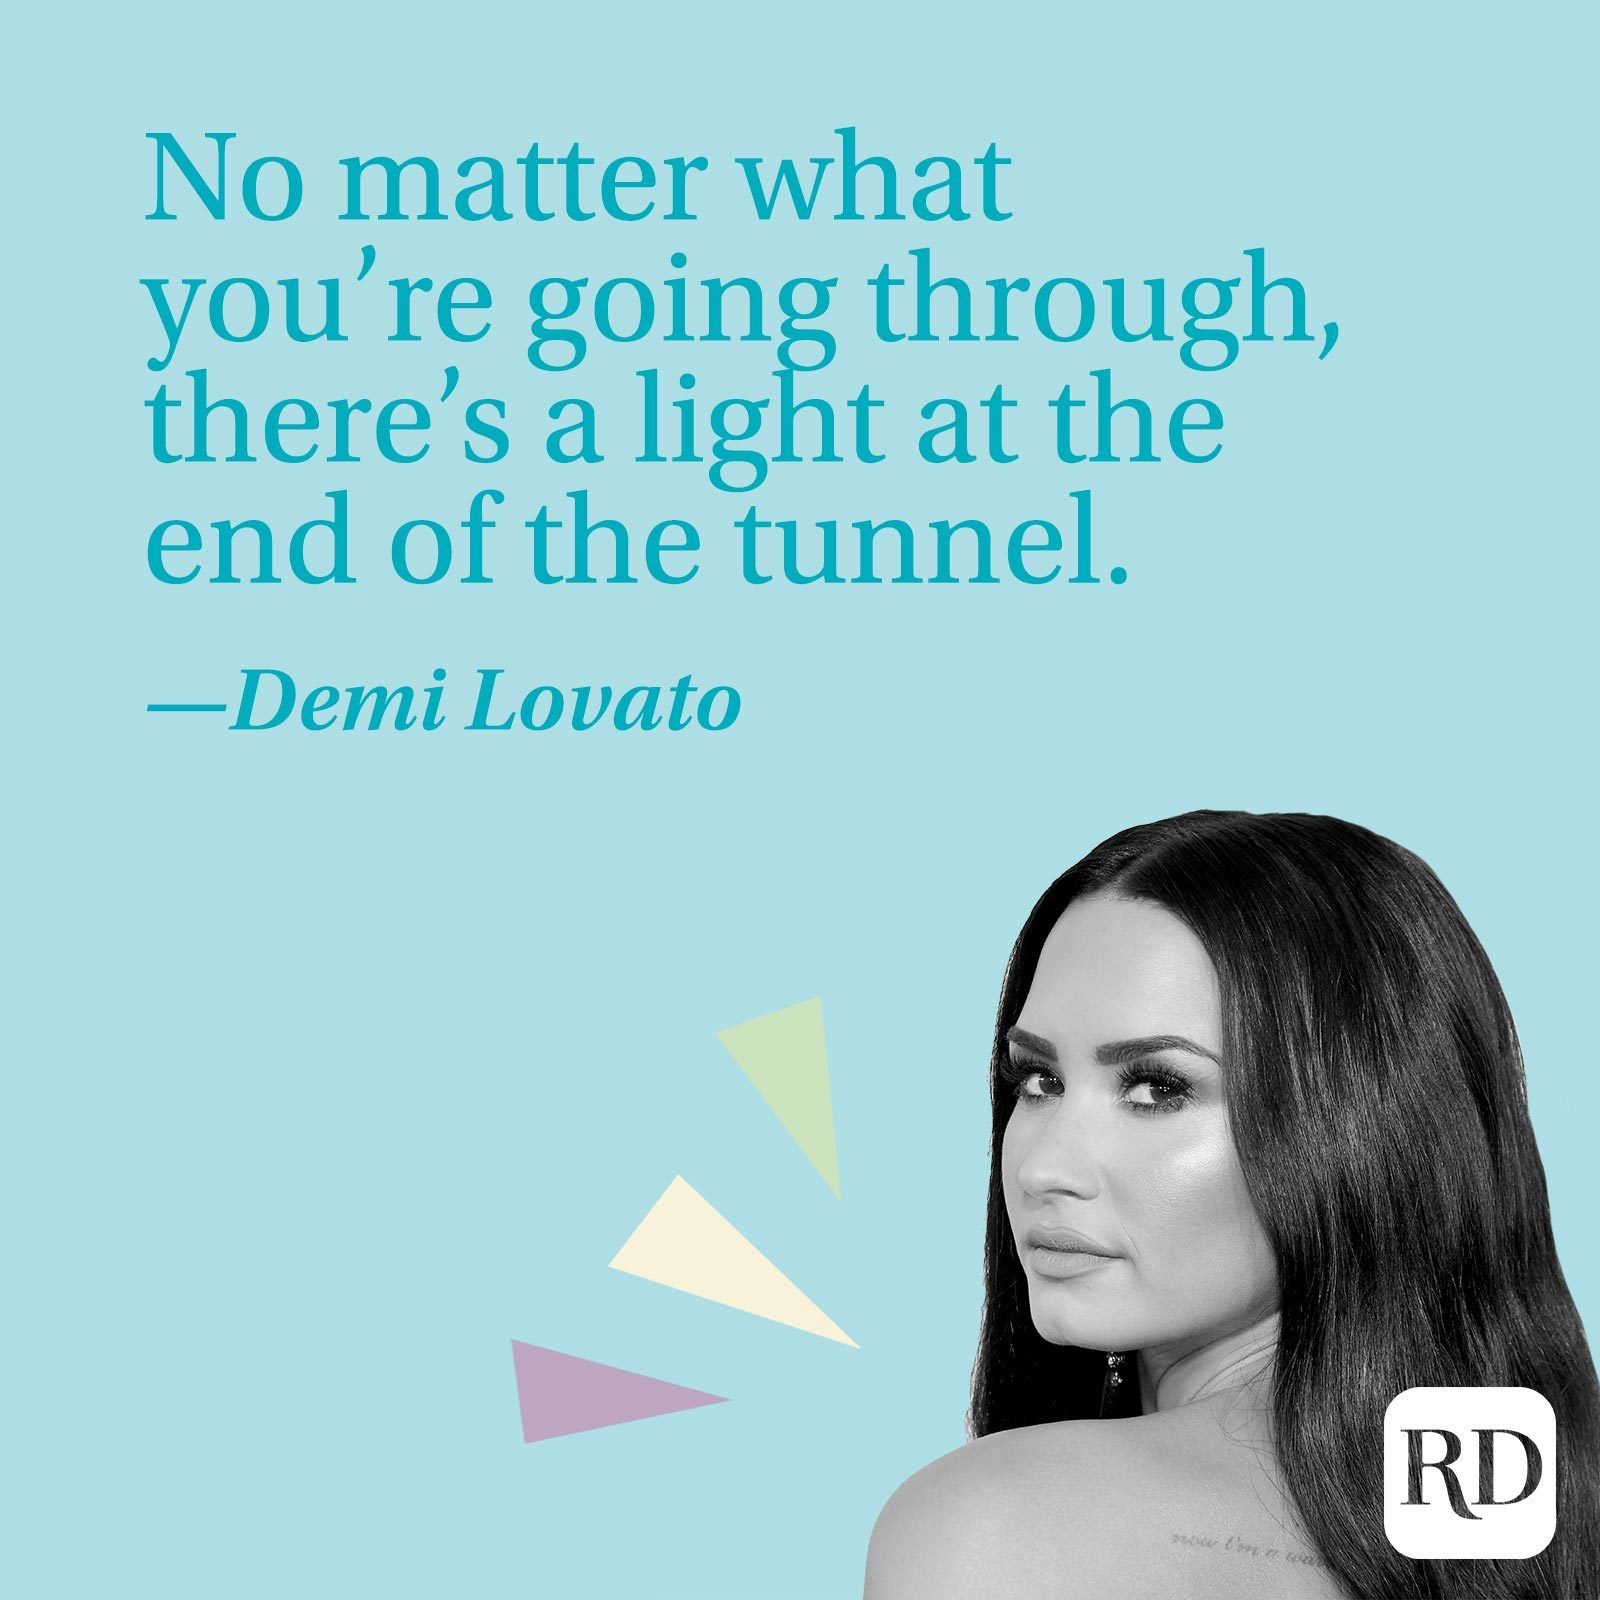 """""""No matter what you're going through, there's a light at the end of the tunnel."""" —Demi Lovato"""